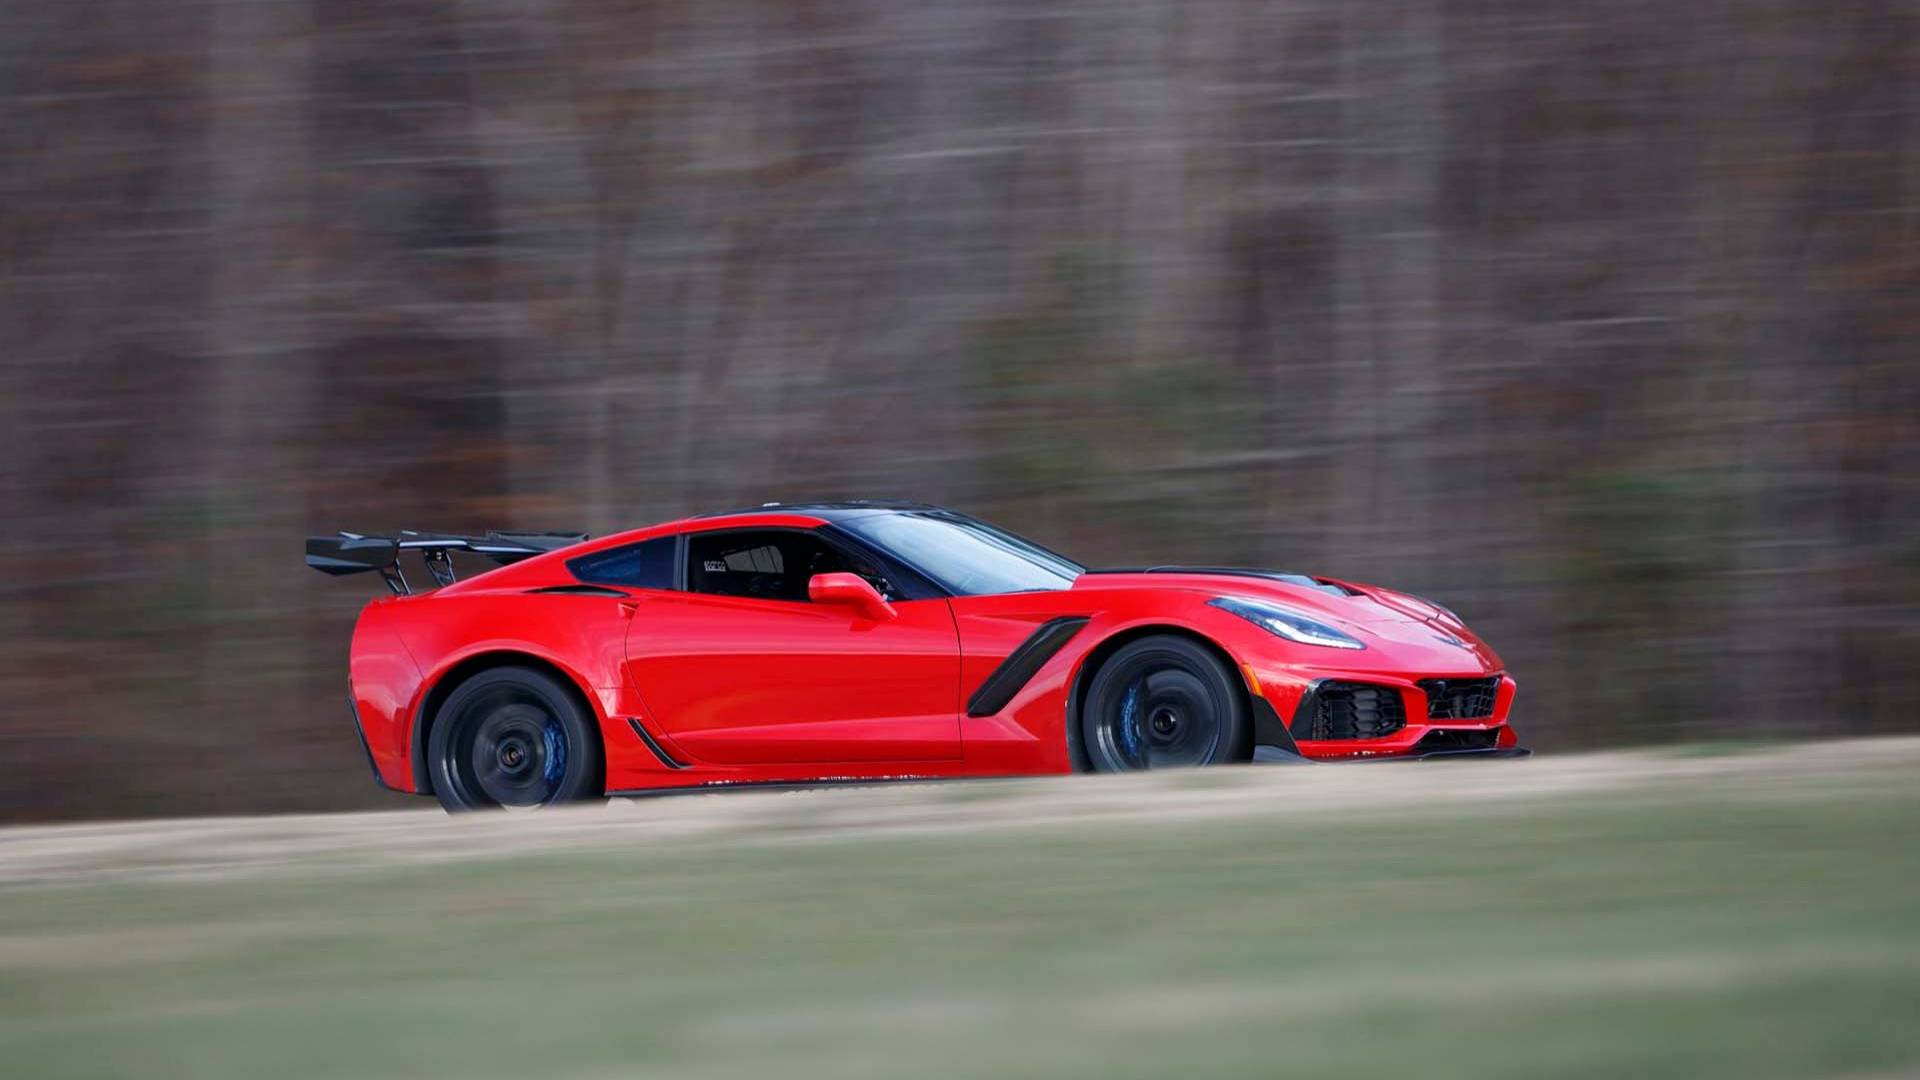 Corvette Zr1 Laps Ring In 7 12 911 Gt3 Rs Beats It At 6 56